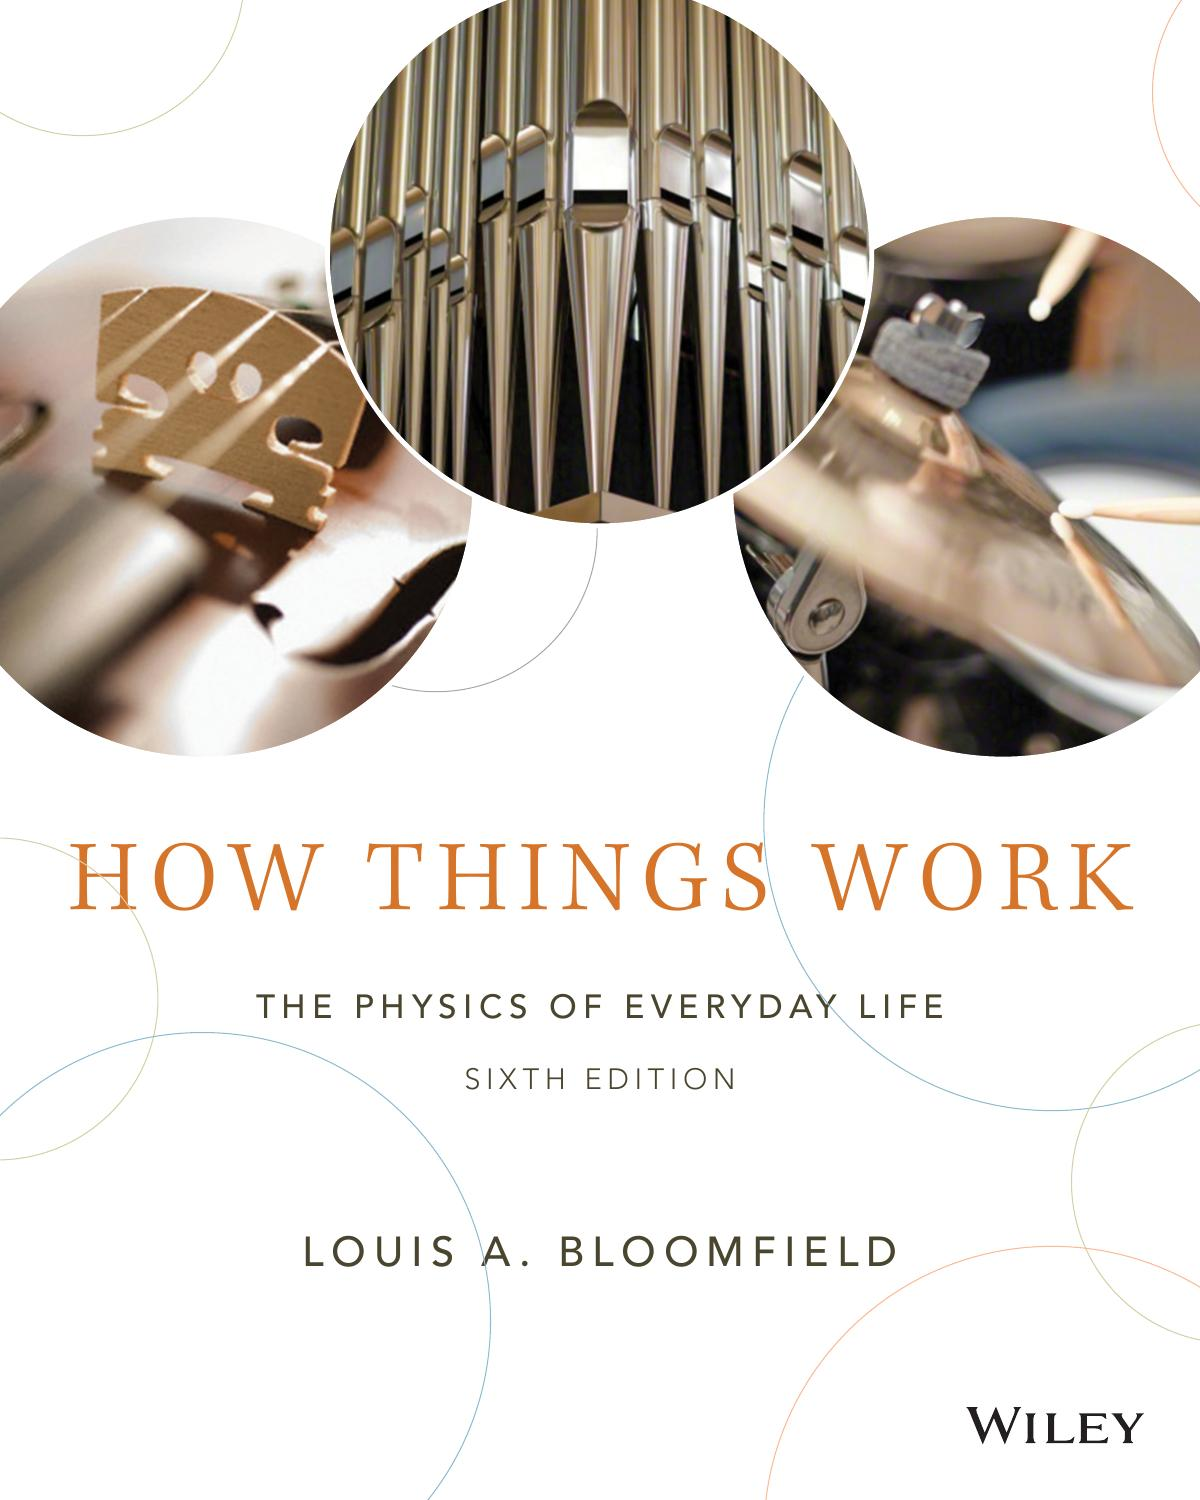 How Things Work The Physics Of Everyday Life 6th Edition By Louis A Bloomfield On Storenvy